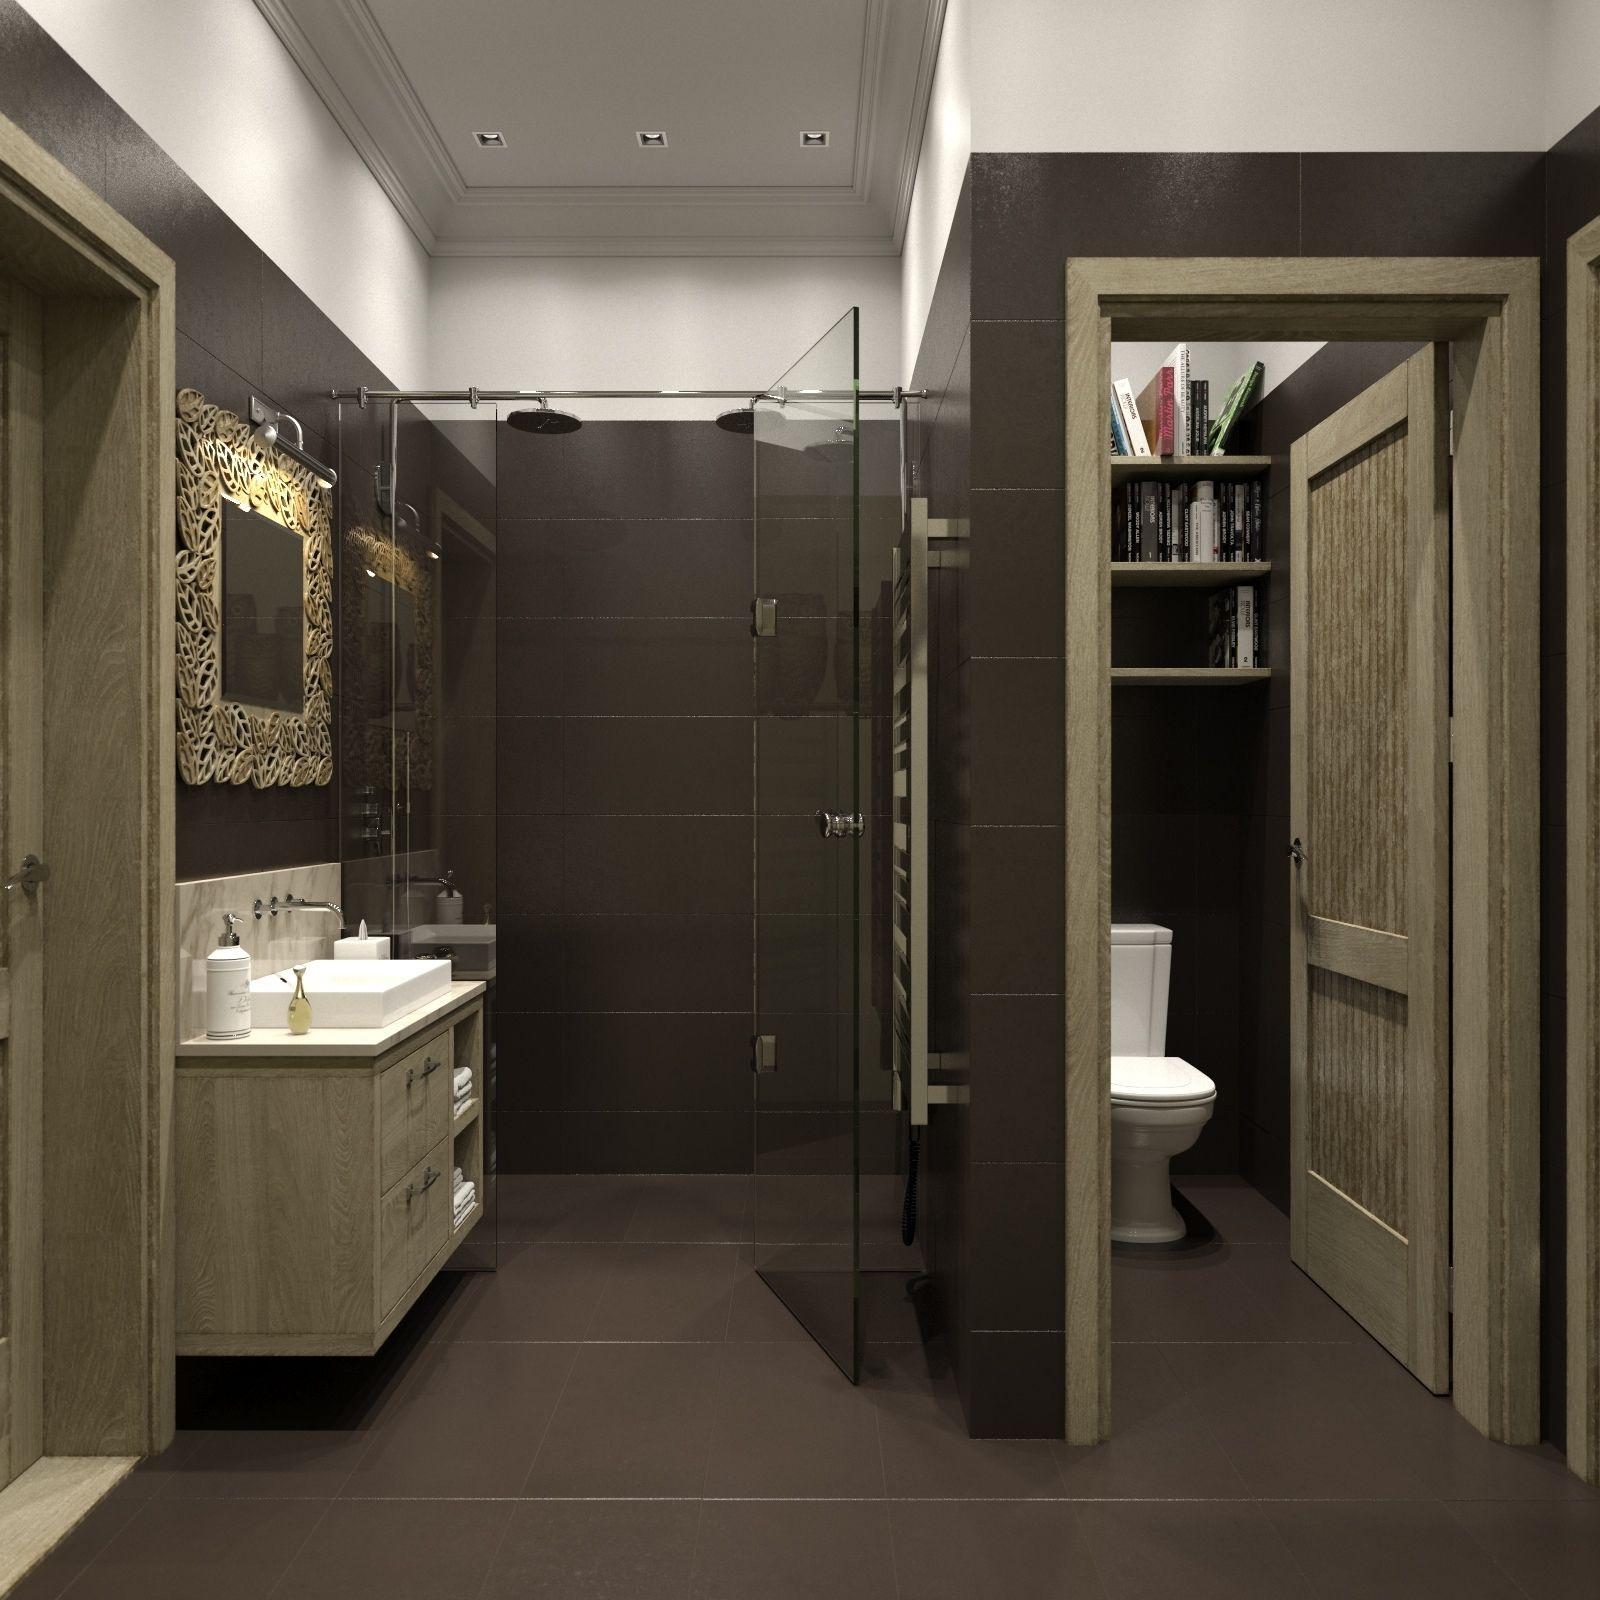 images about bathroom on pinterest toilets basins and bathroom showers: architecture bathroom toilet